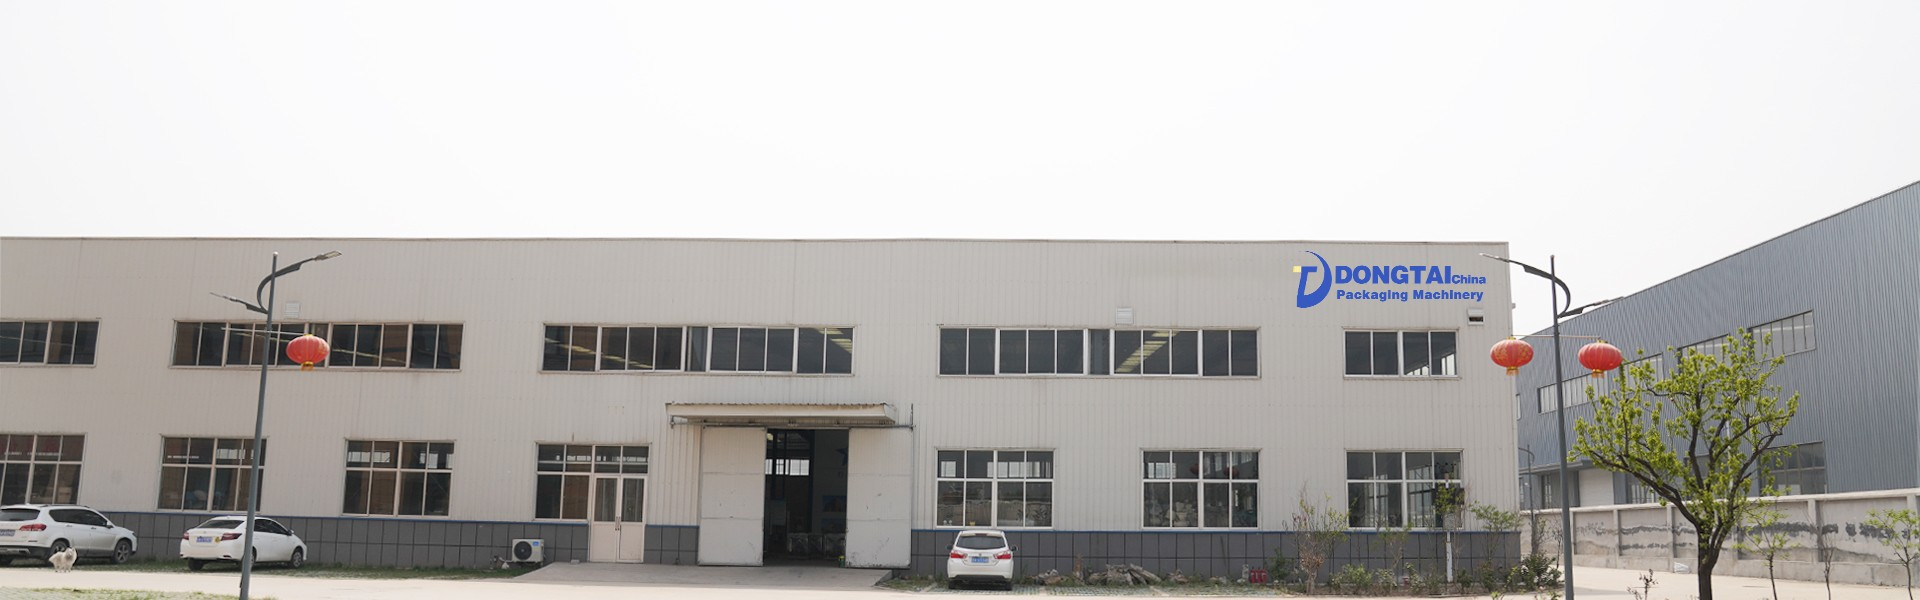 Shandong Dongtai Machinery Manufacturing Co. Ltd